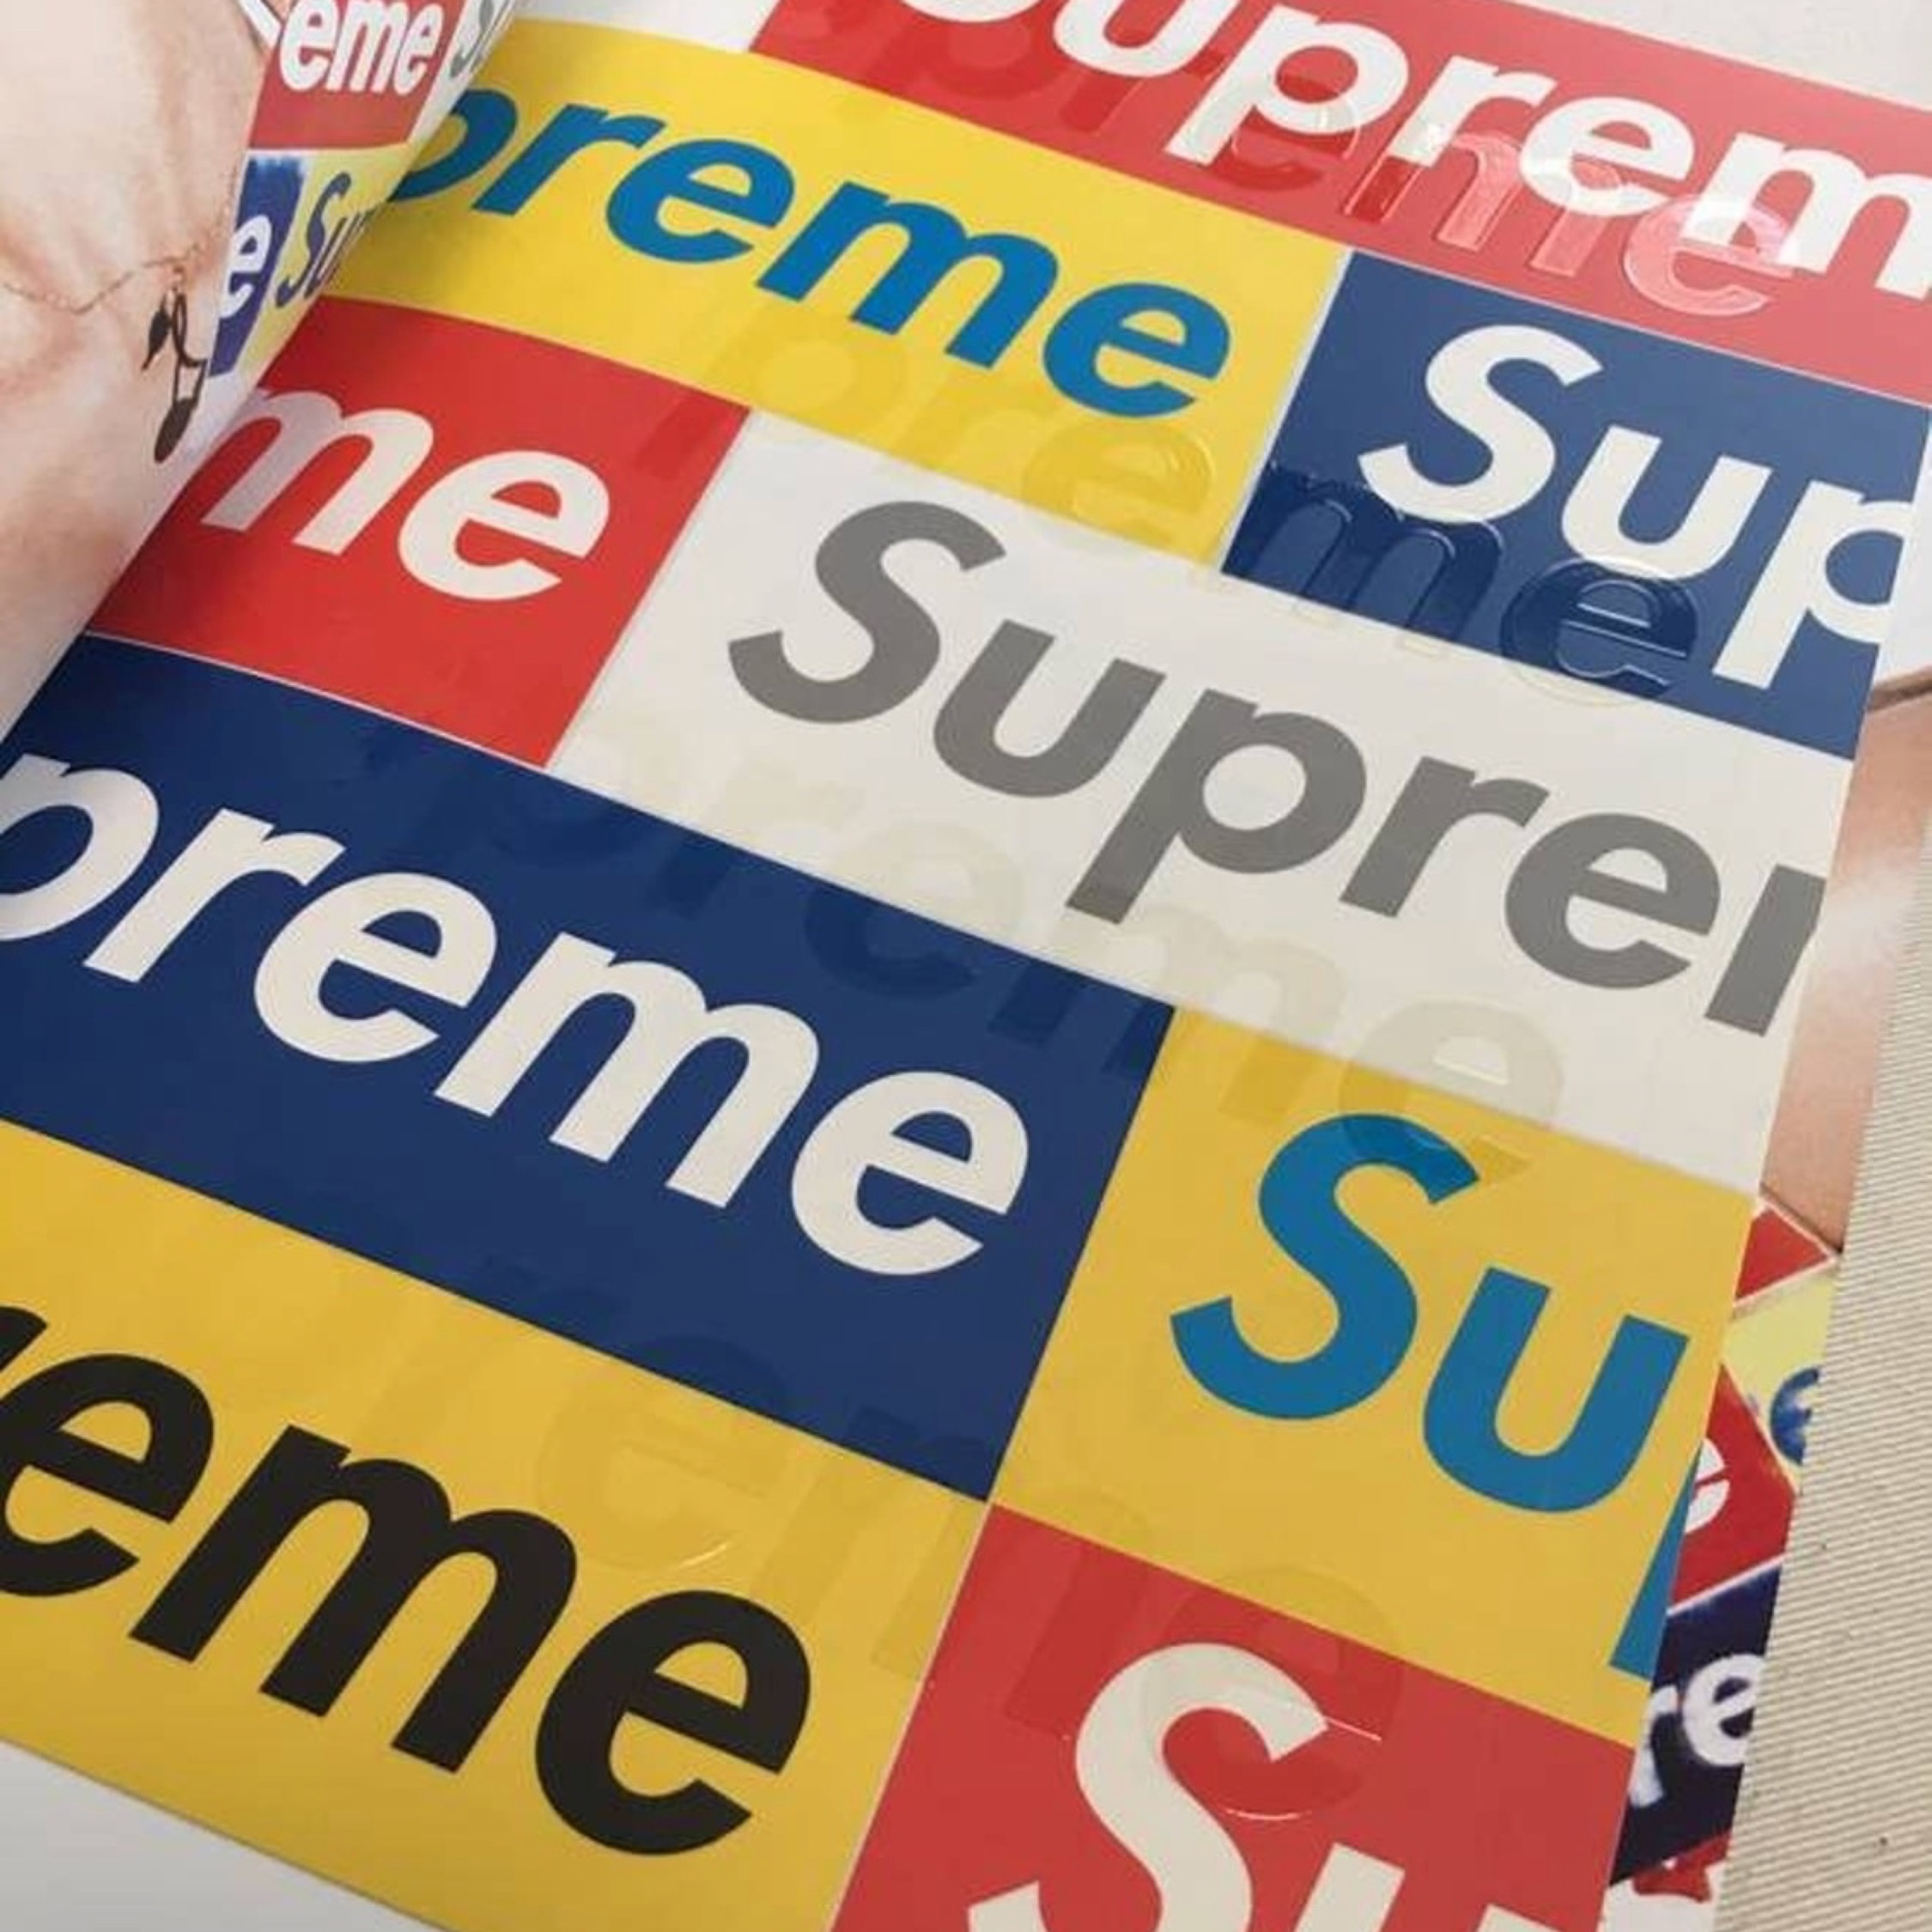 Supreme Book Volume 3 + Box Logo Stickers